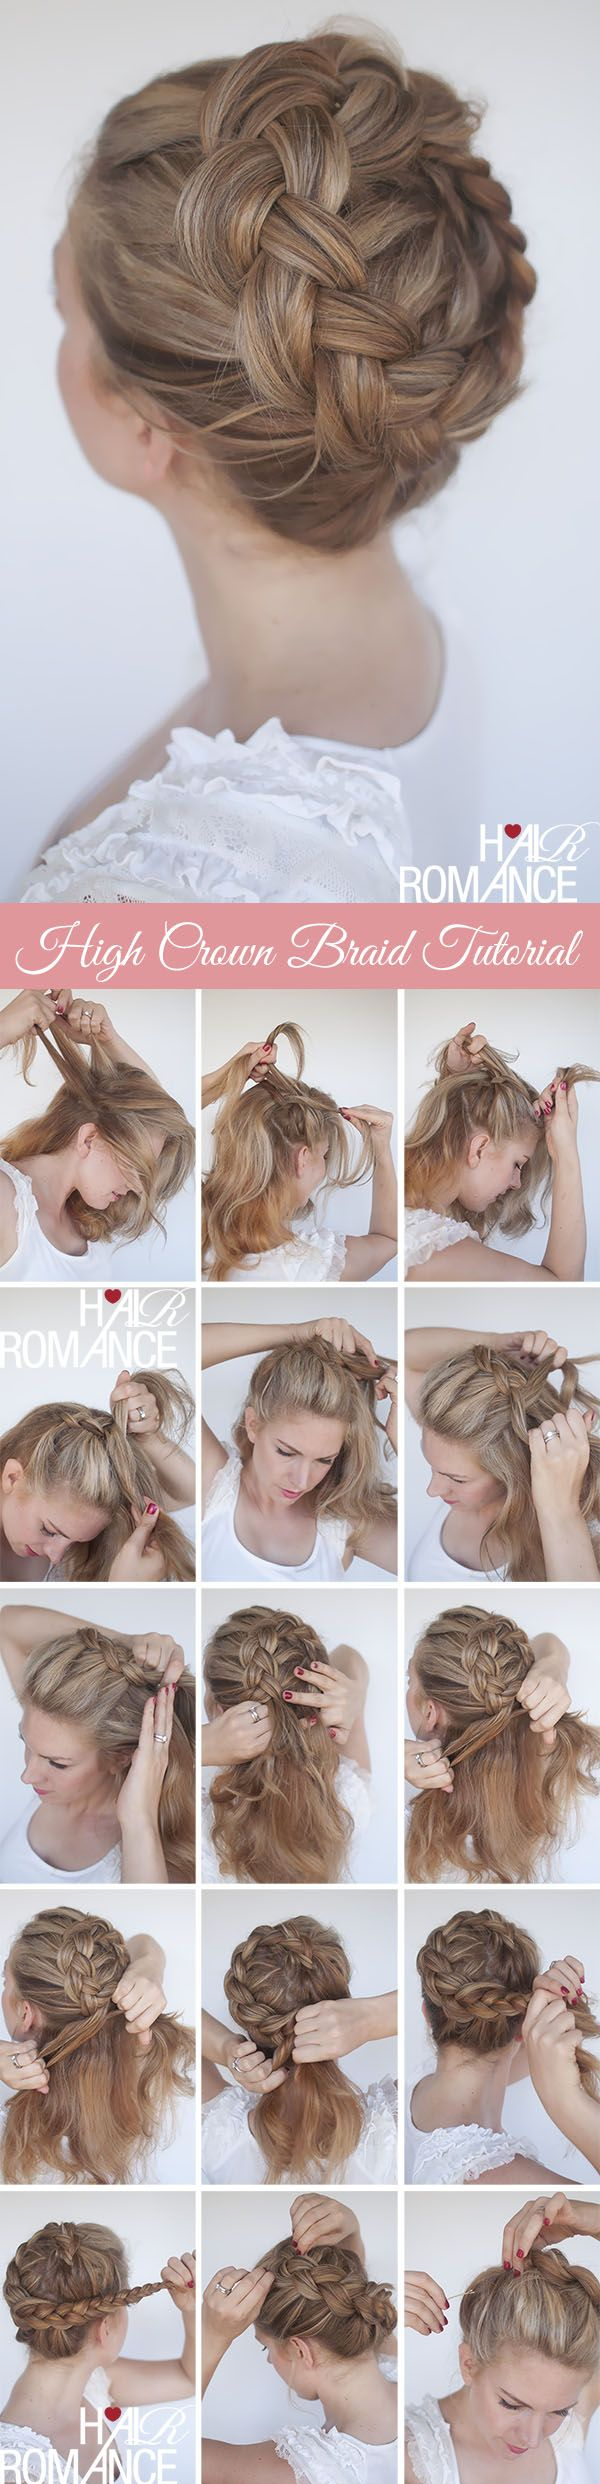 DIY vintage hair -braided crown hairstyle tutorial